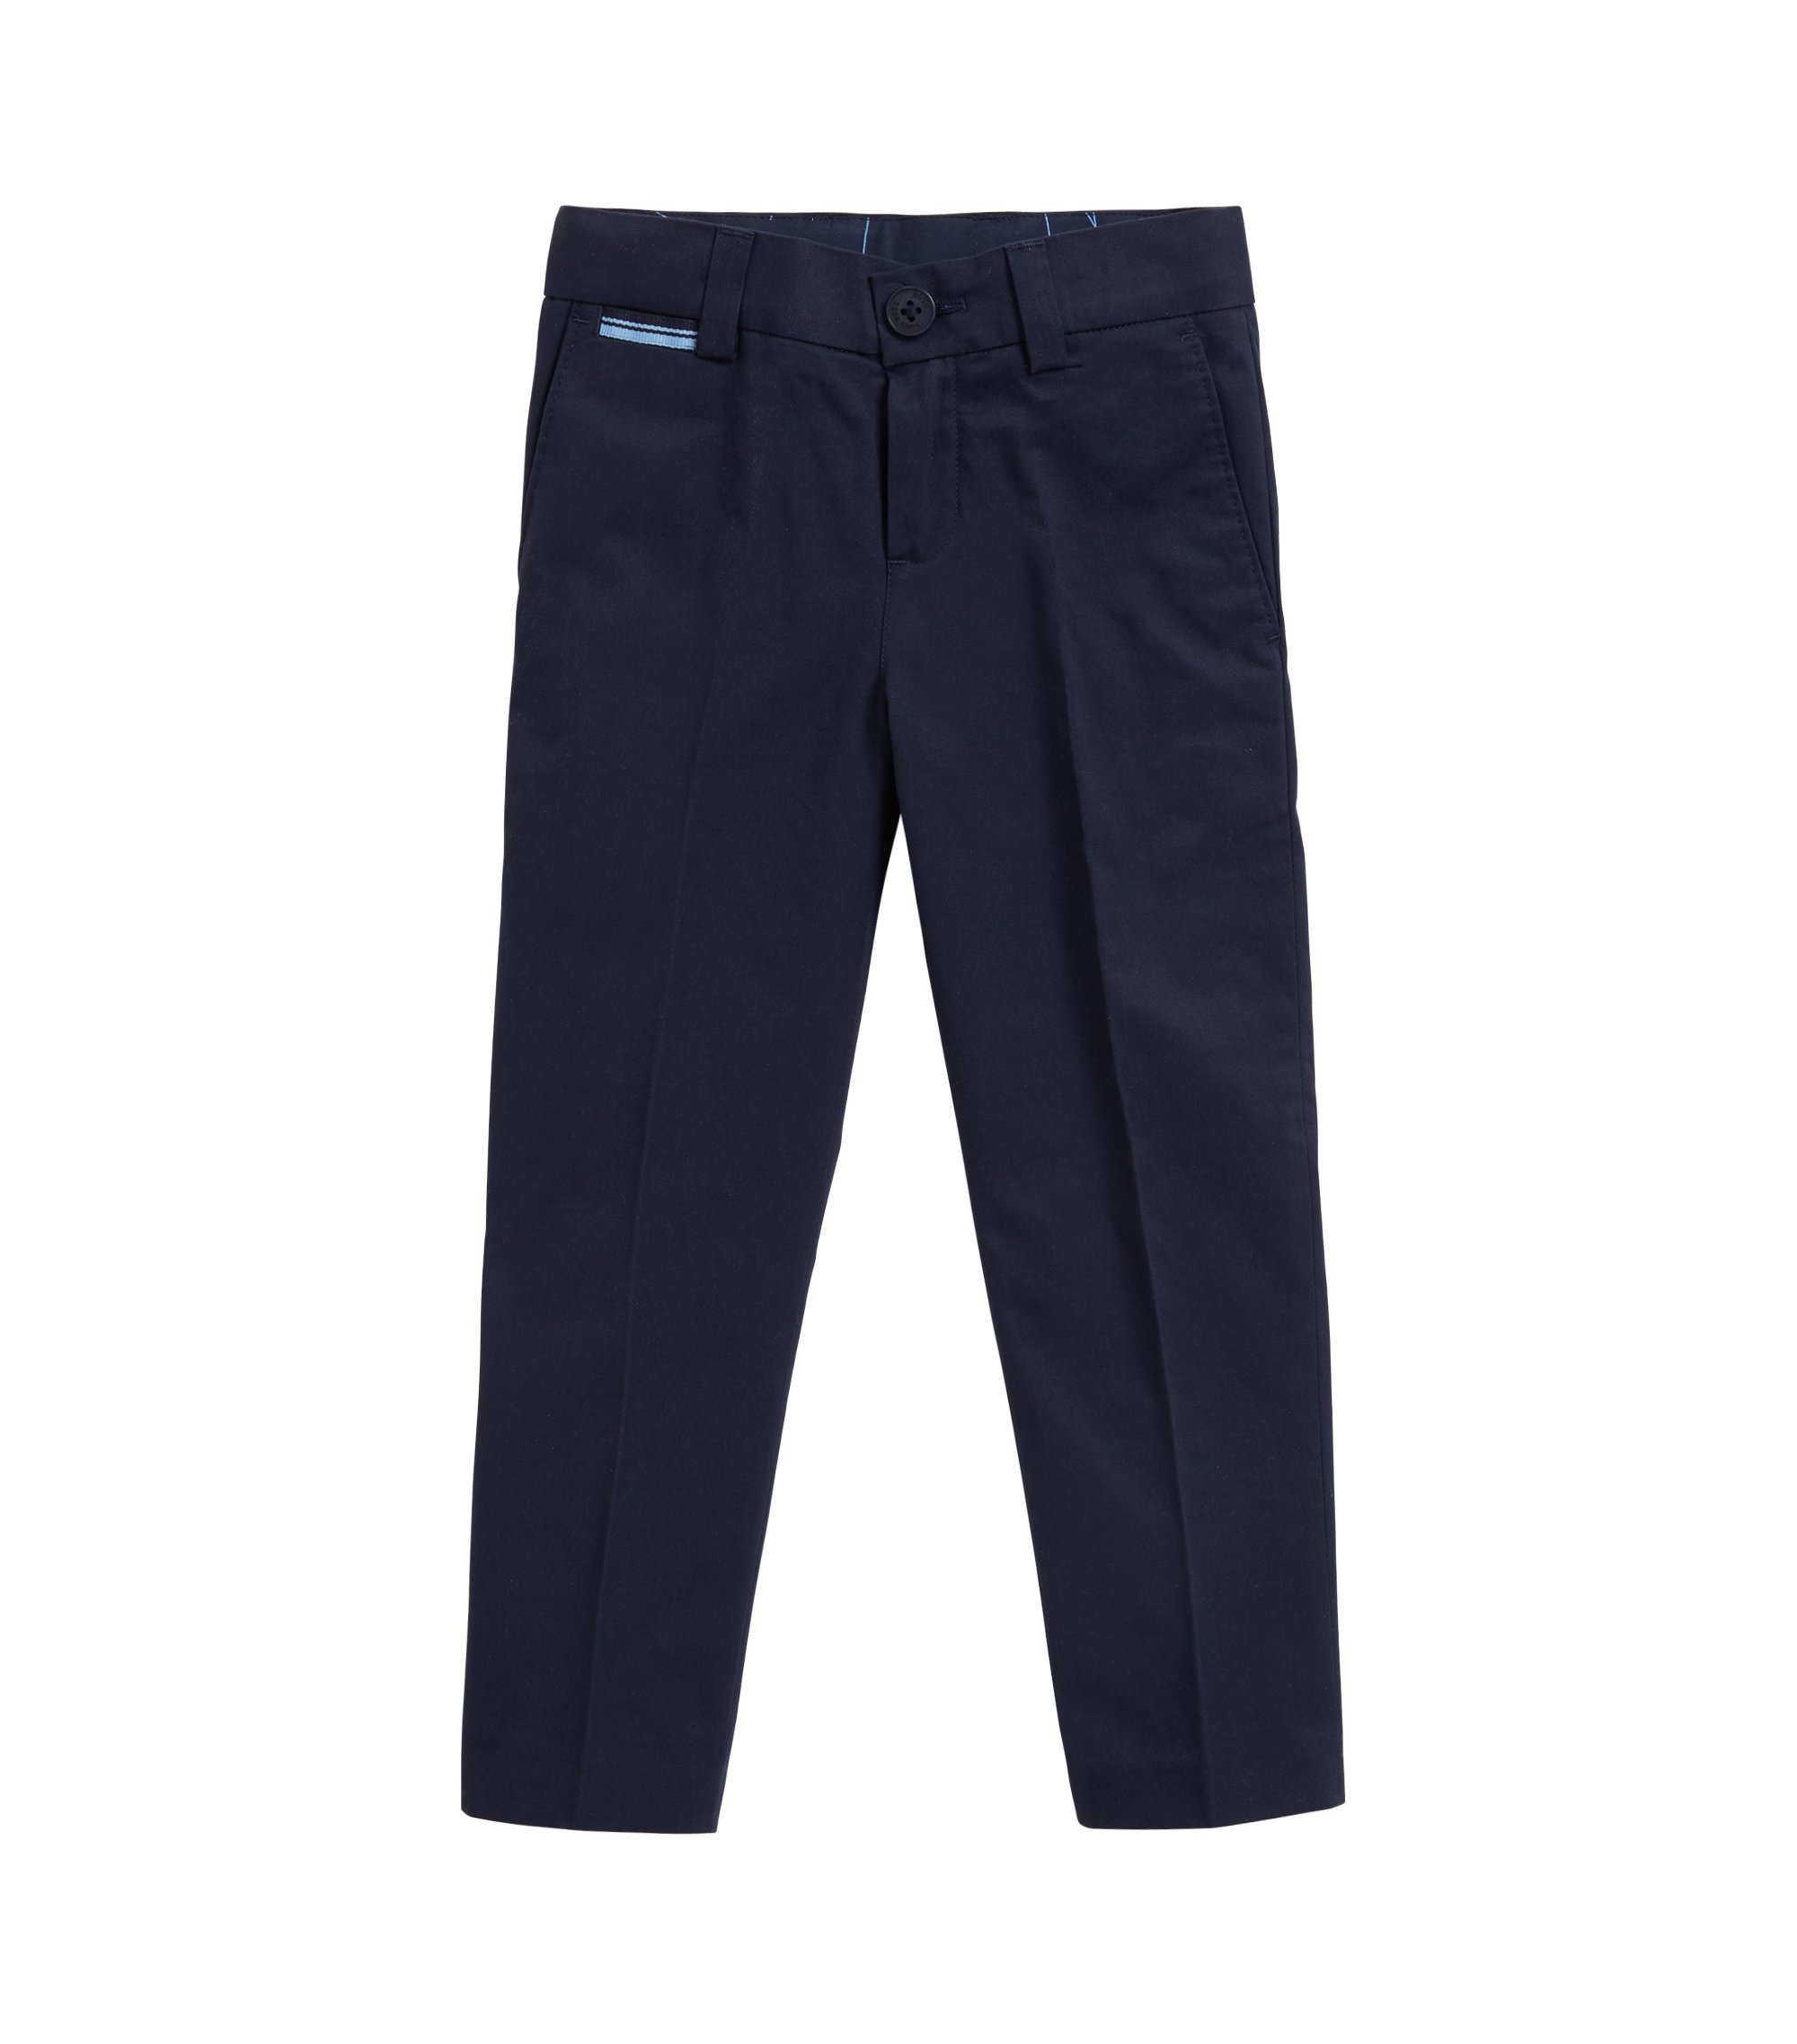 Kids' pleated suit trousers in cotton twill, Dark Blue